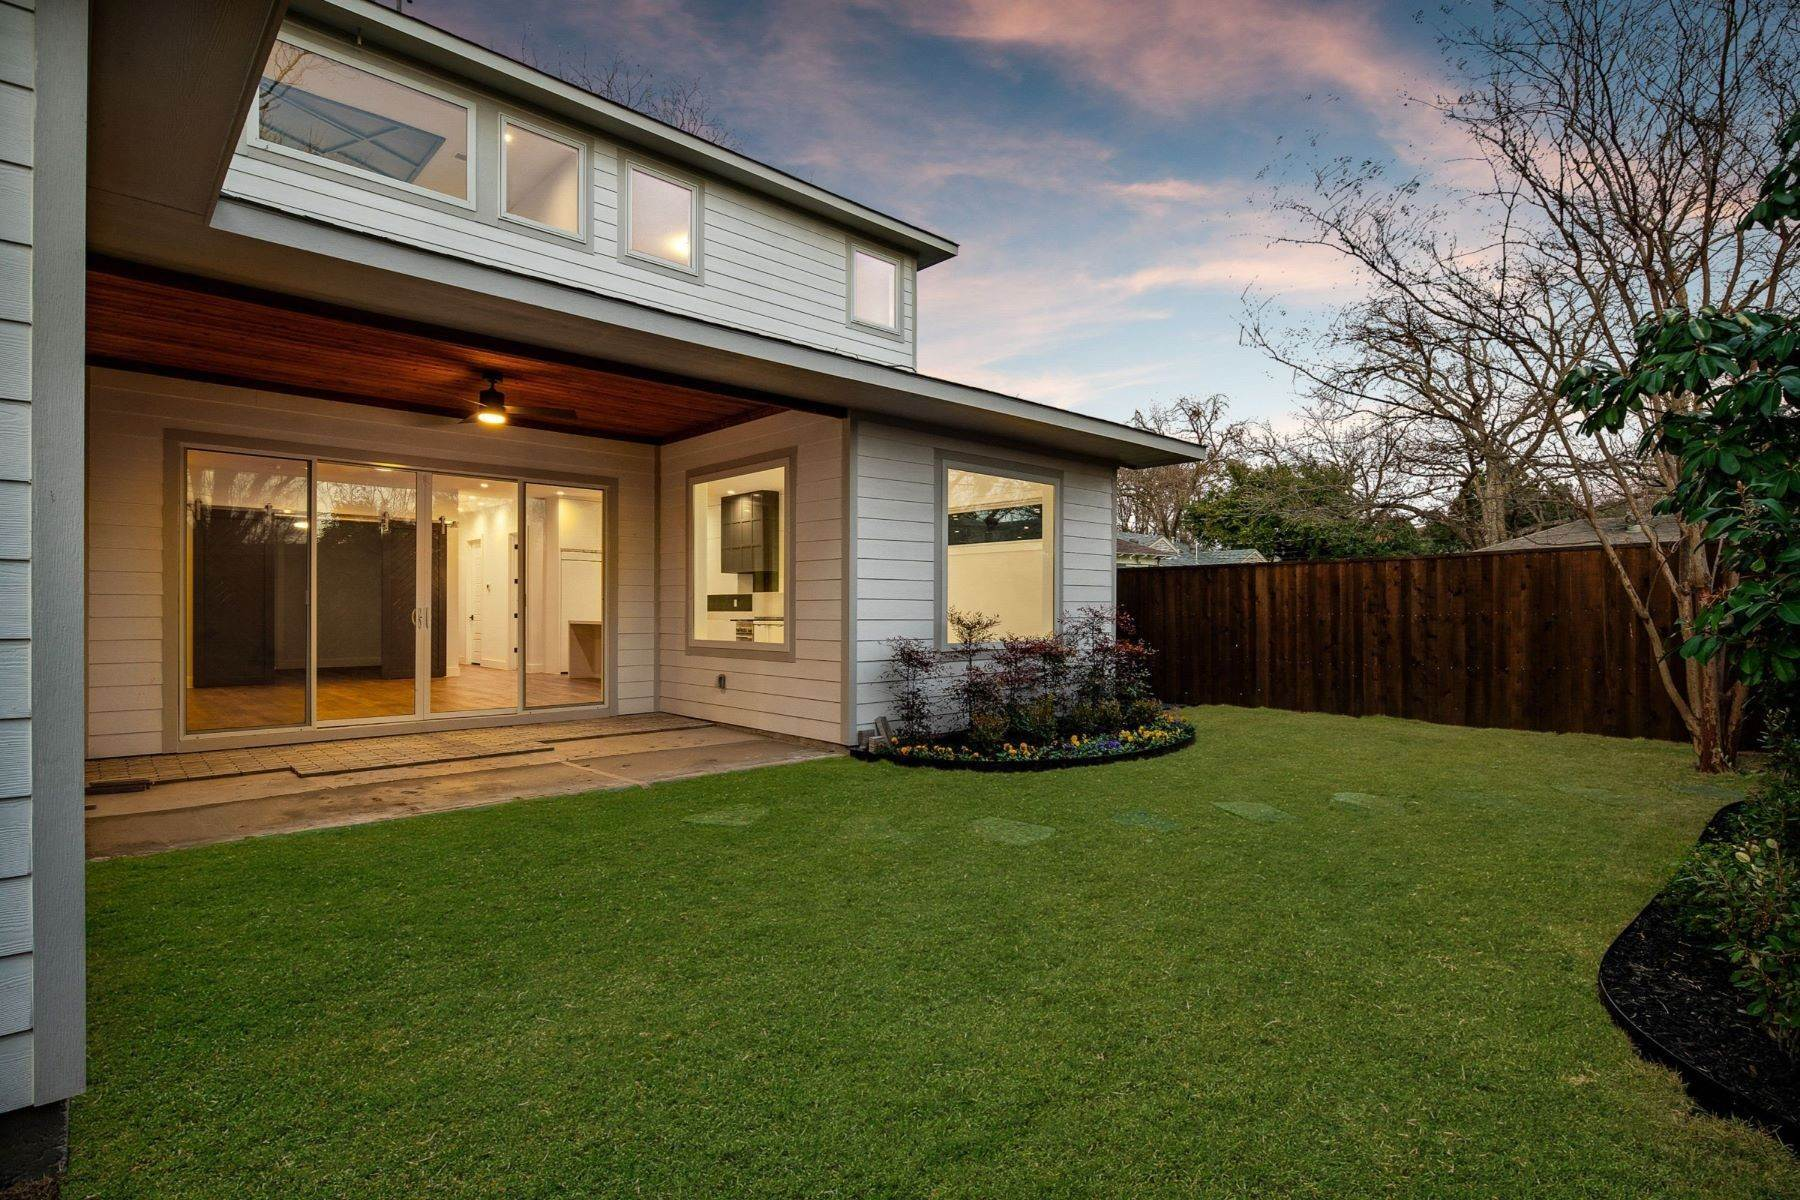 19. Single Family Homes for Sale at Midway Hollow Modern Transitional 3752 Park Lane Dallas, Texas 75220 United States